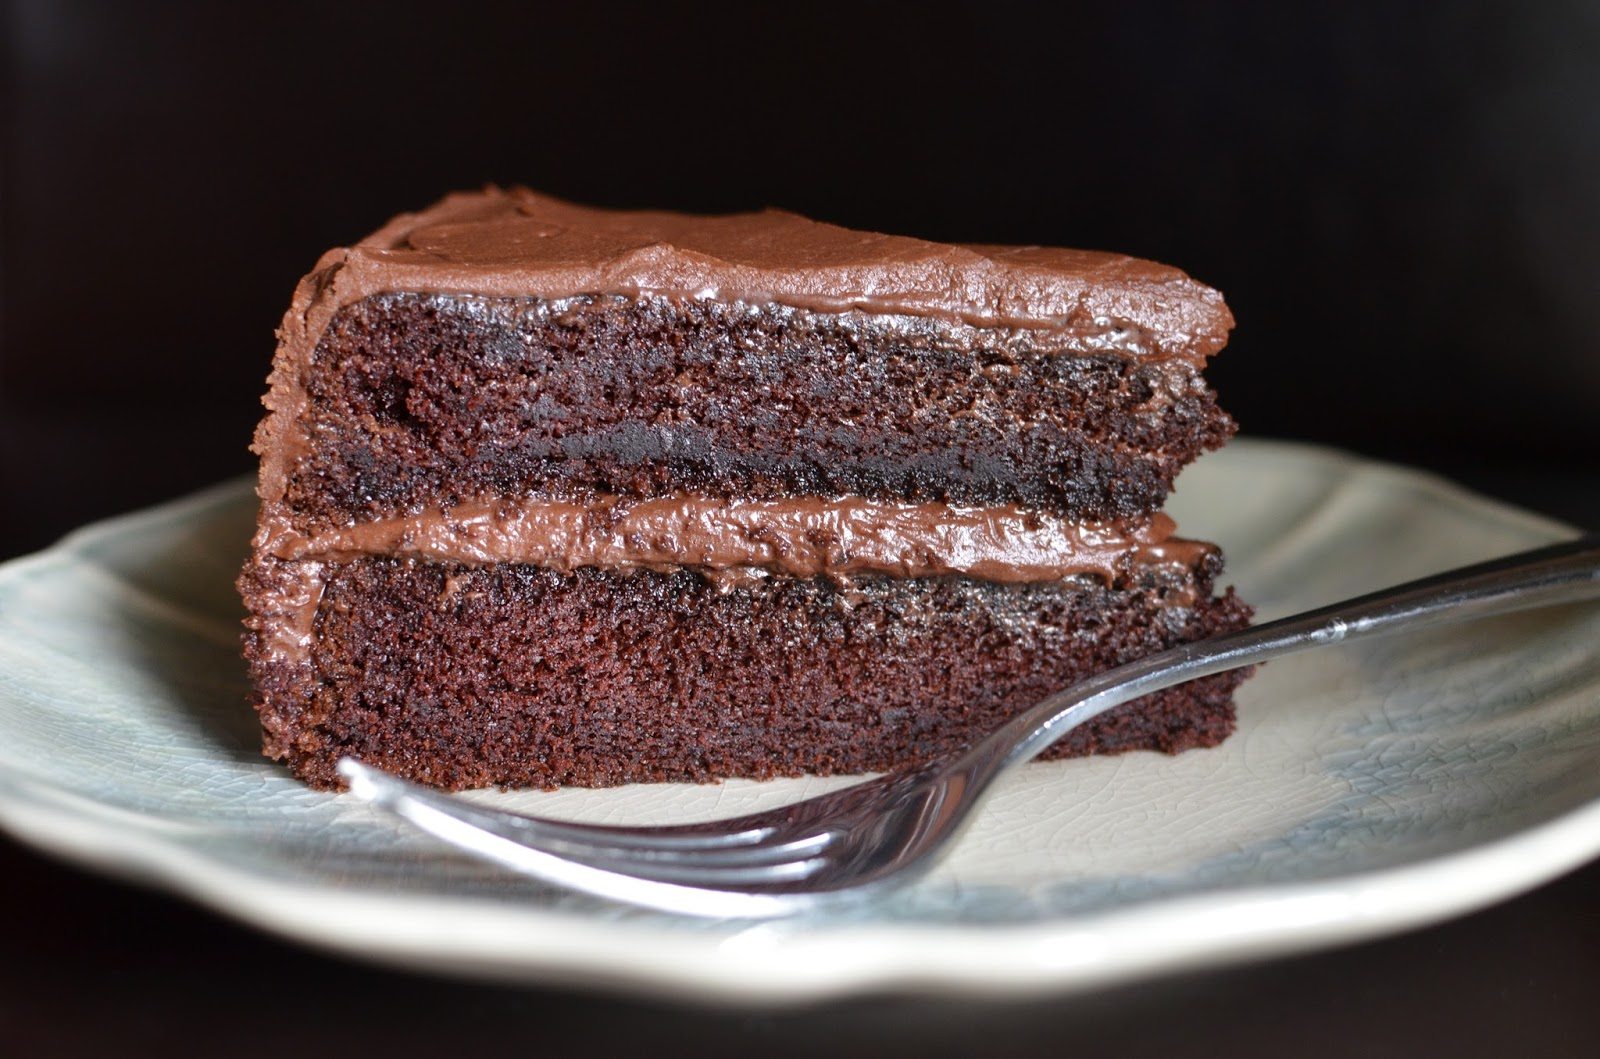 Playing with Flour: Hershey's (vs. Beatty's) chocolate cake